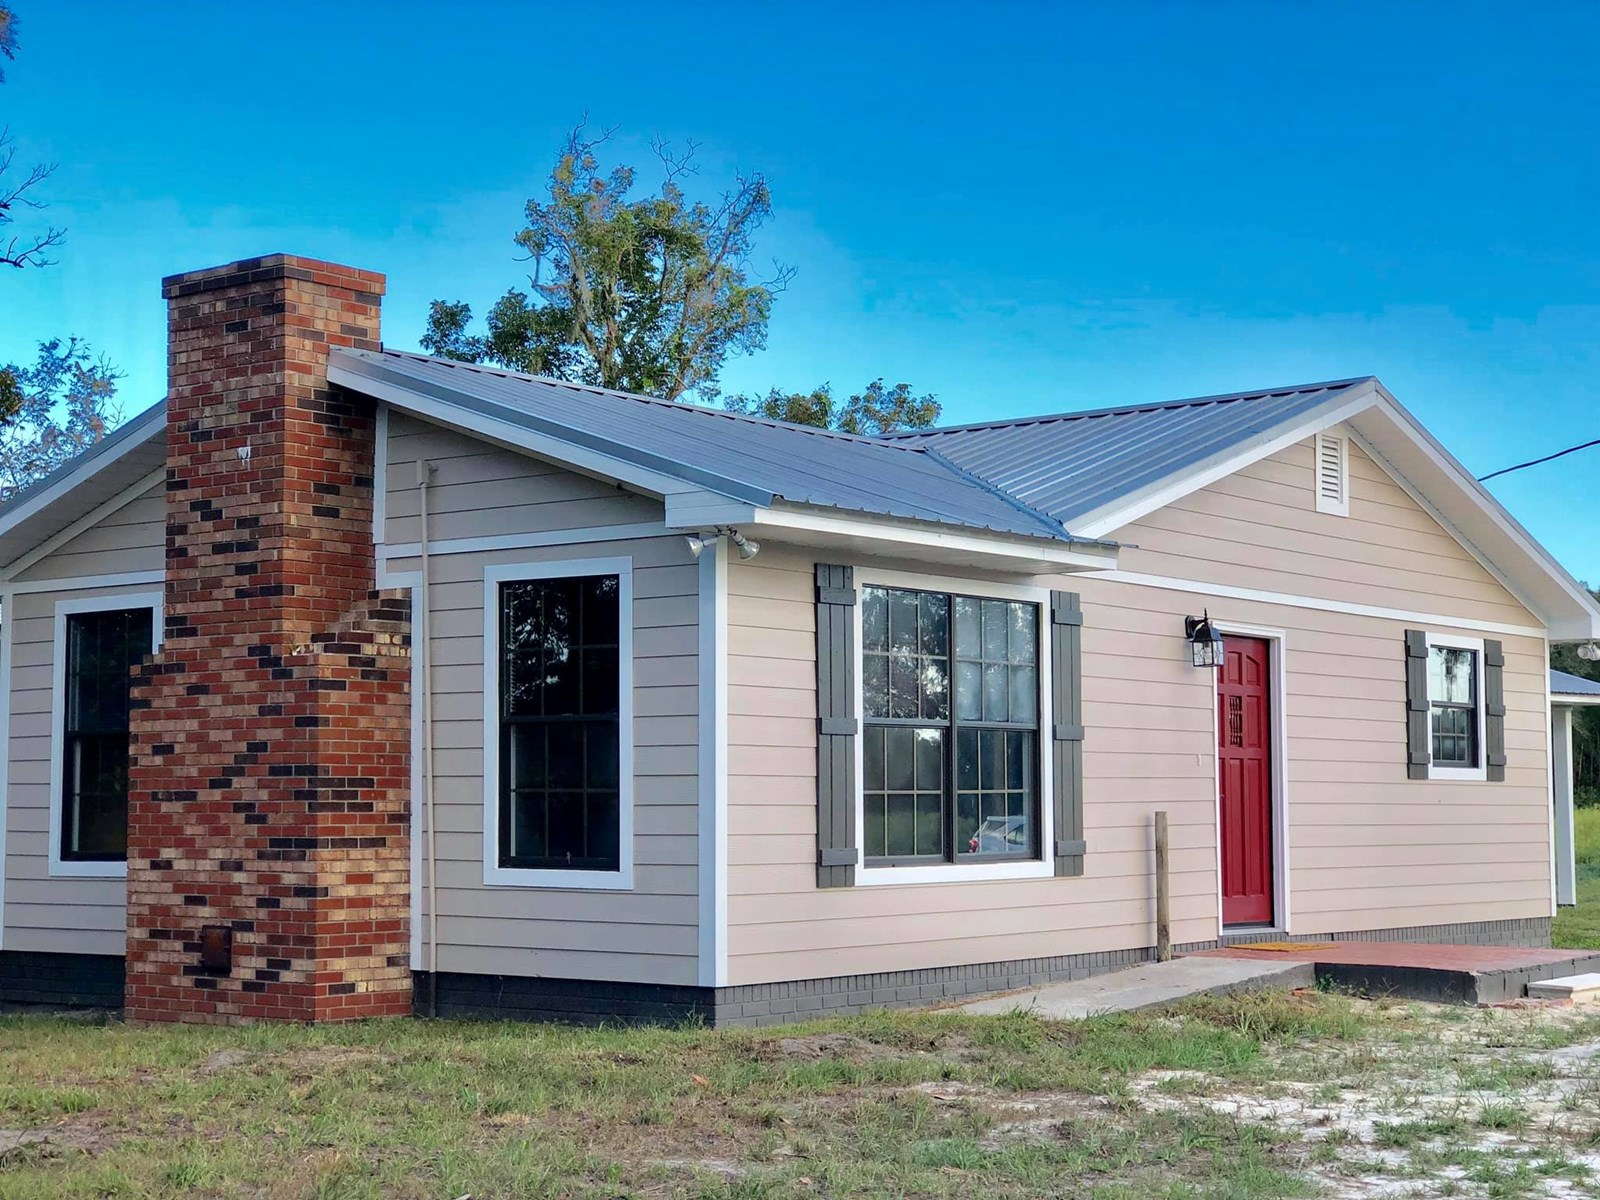 COMPLETELY REMODELED Farmhouse in BELL, FL on 20 ACRES